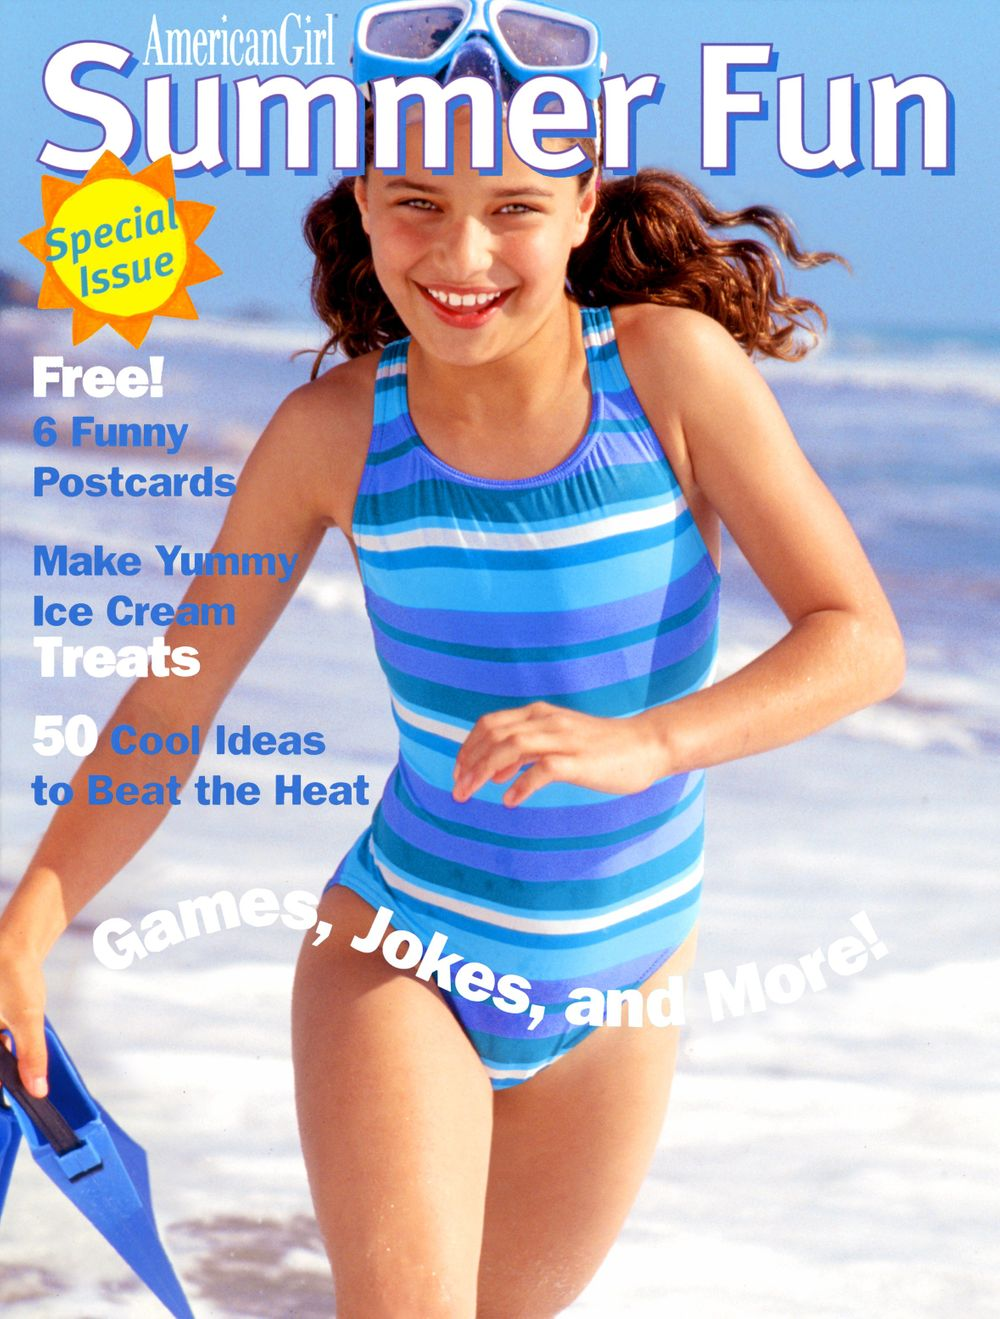 American Girl Summer Fun Magazine Cover